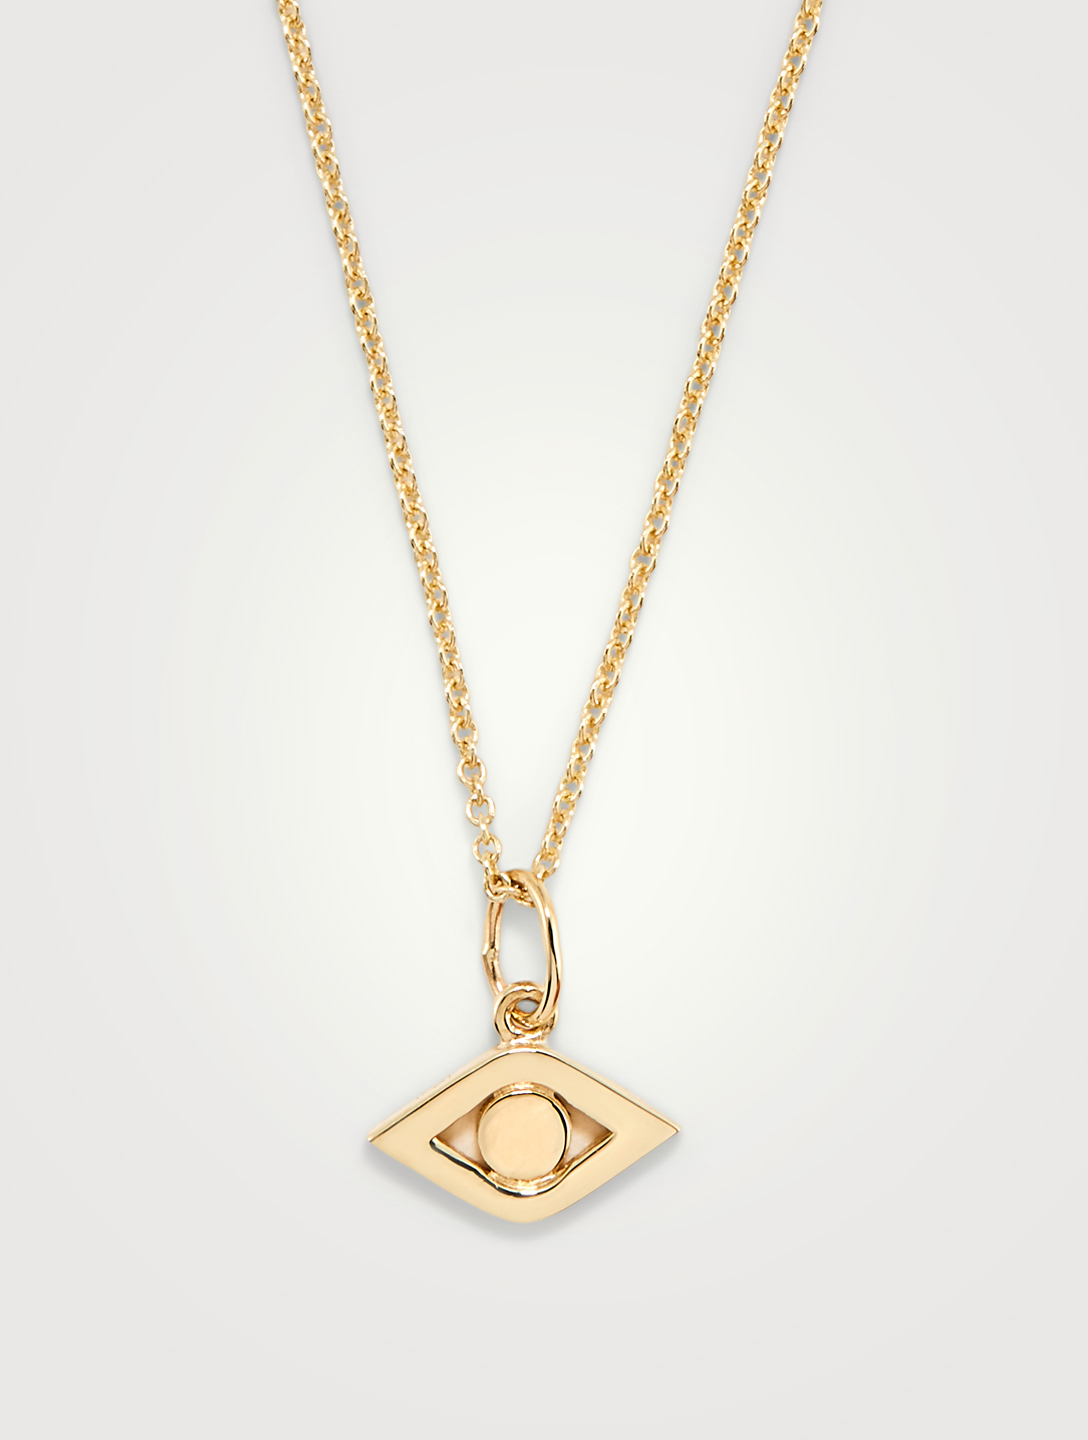 SYDNEY EVAN Medium 14K Gold Evil Eye Charm Necklace Women's Metallic